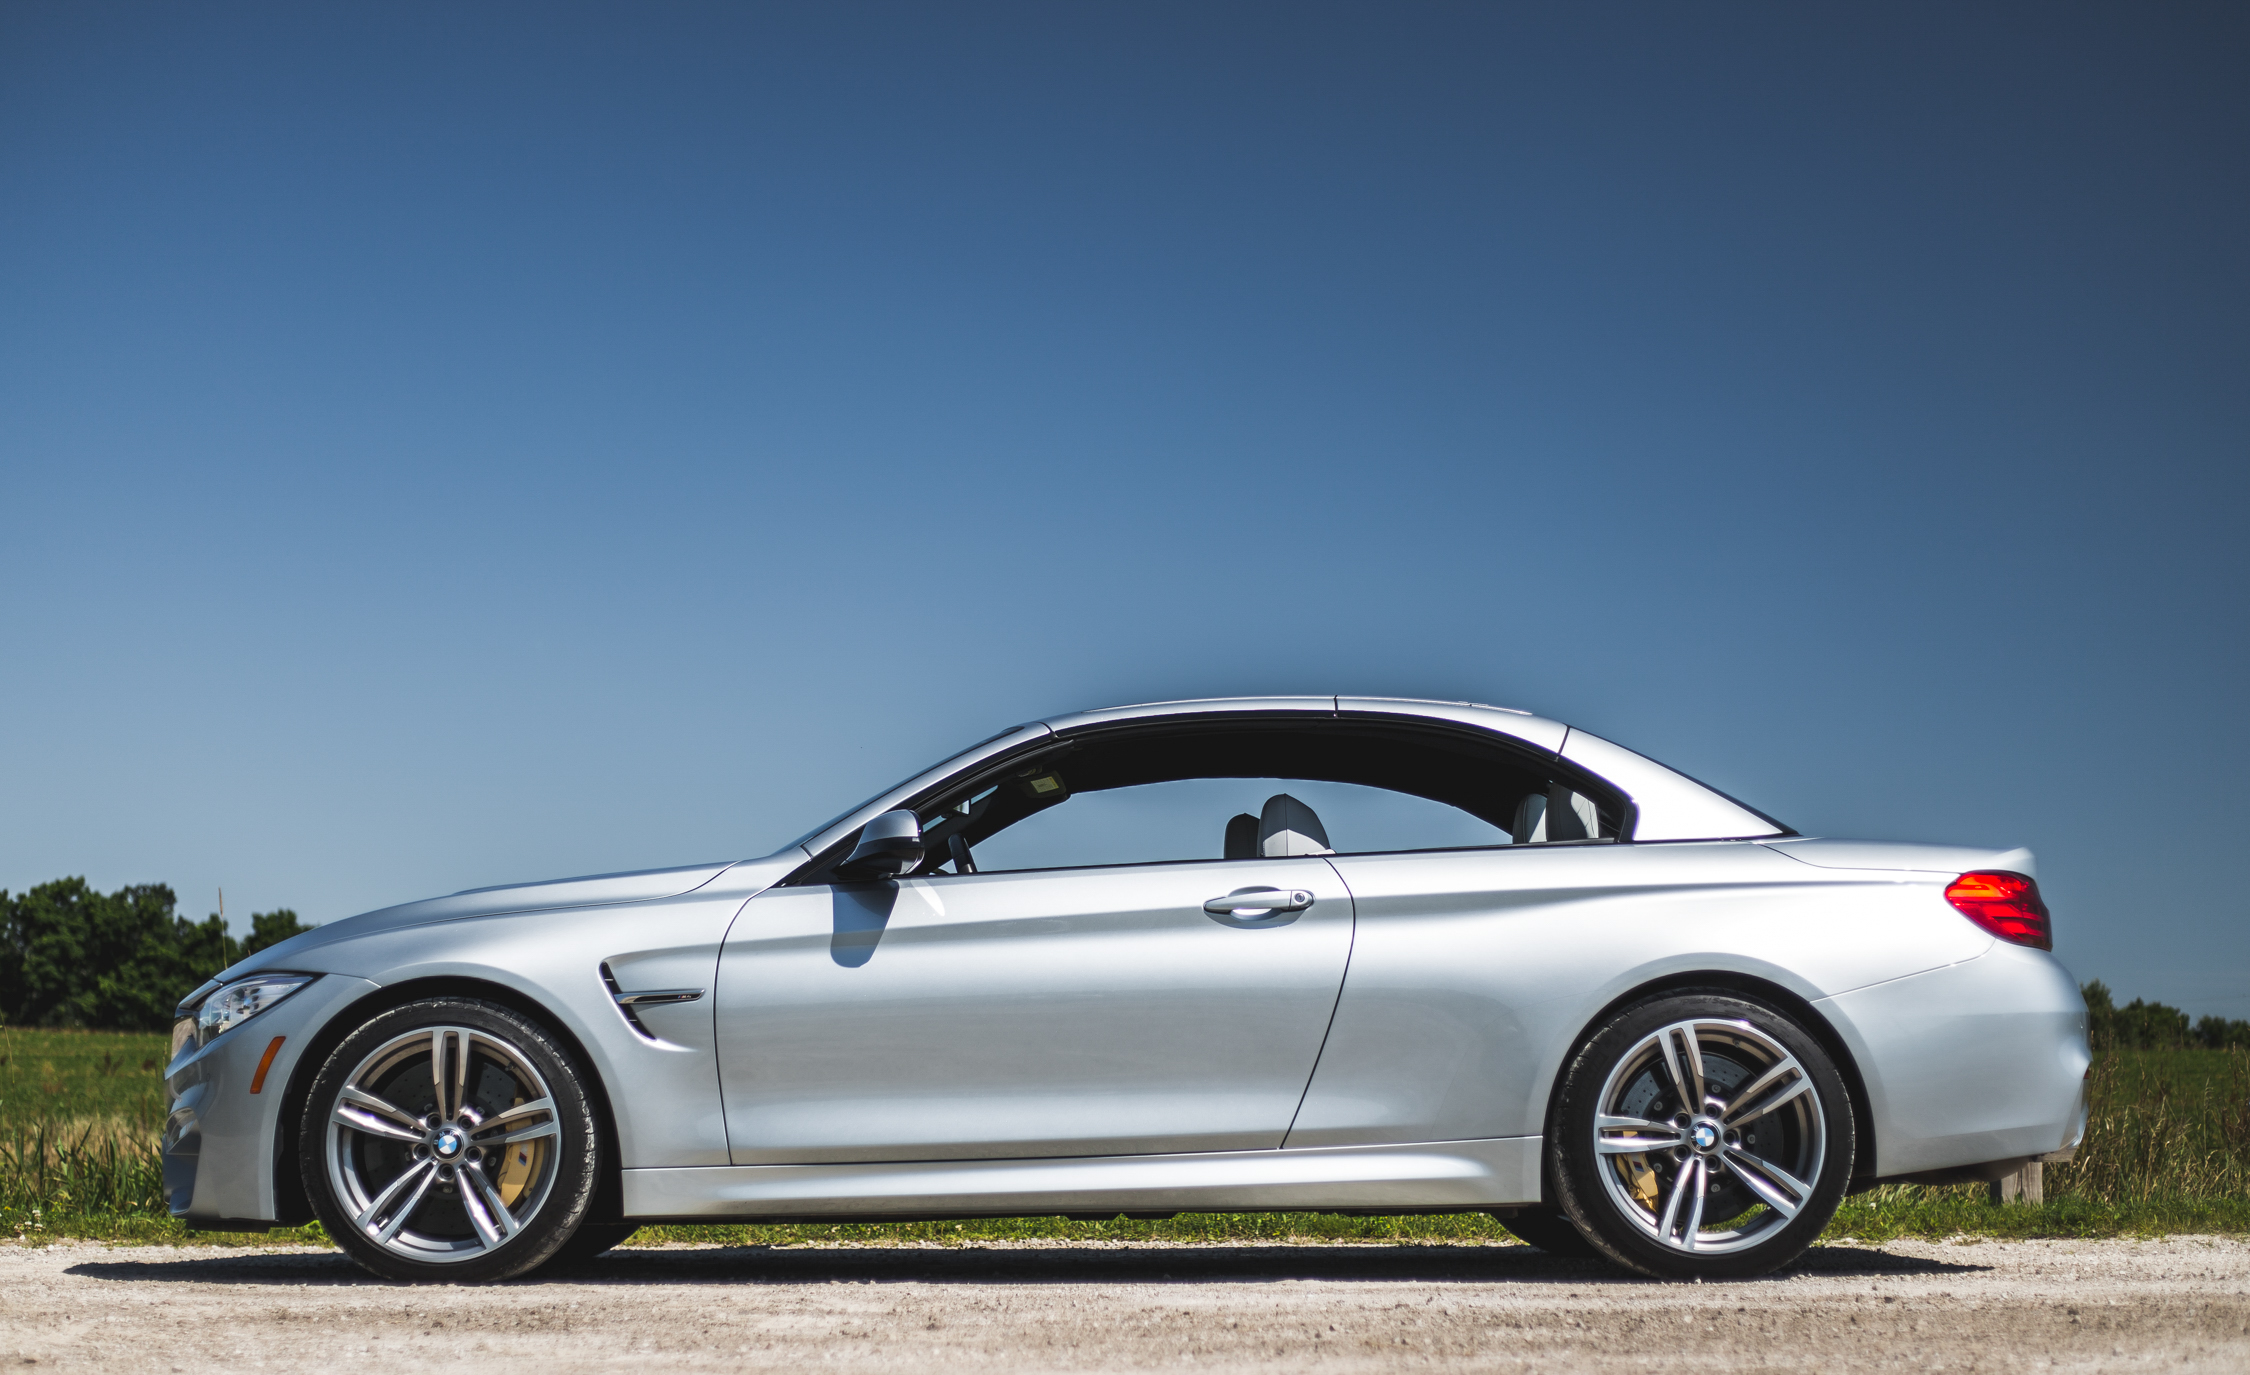 BMW M Convertible Overview Cars Performance Reviews - 2015 bmw m4 convertible price